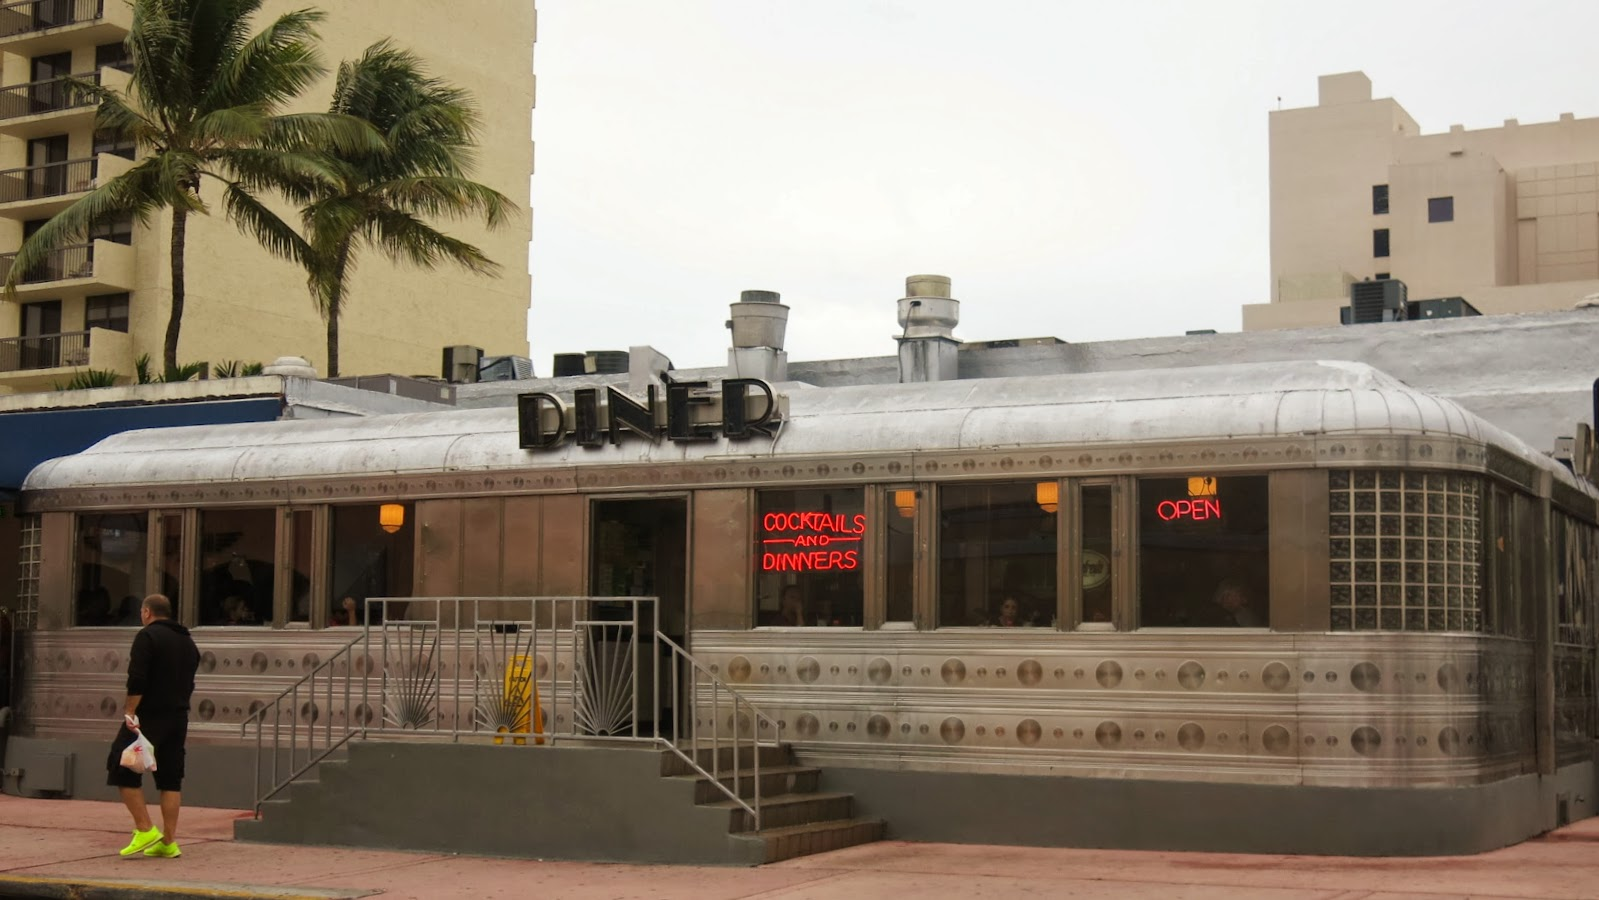 11th Street Diner South Beach Miami